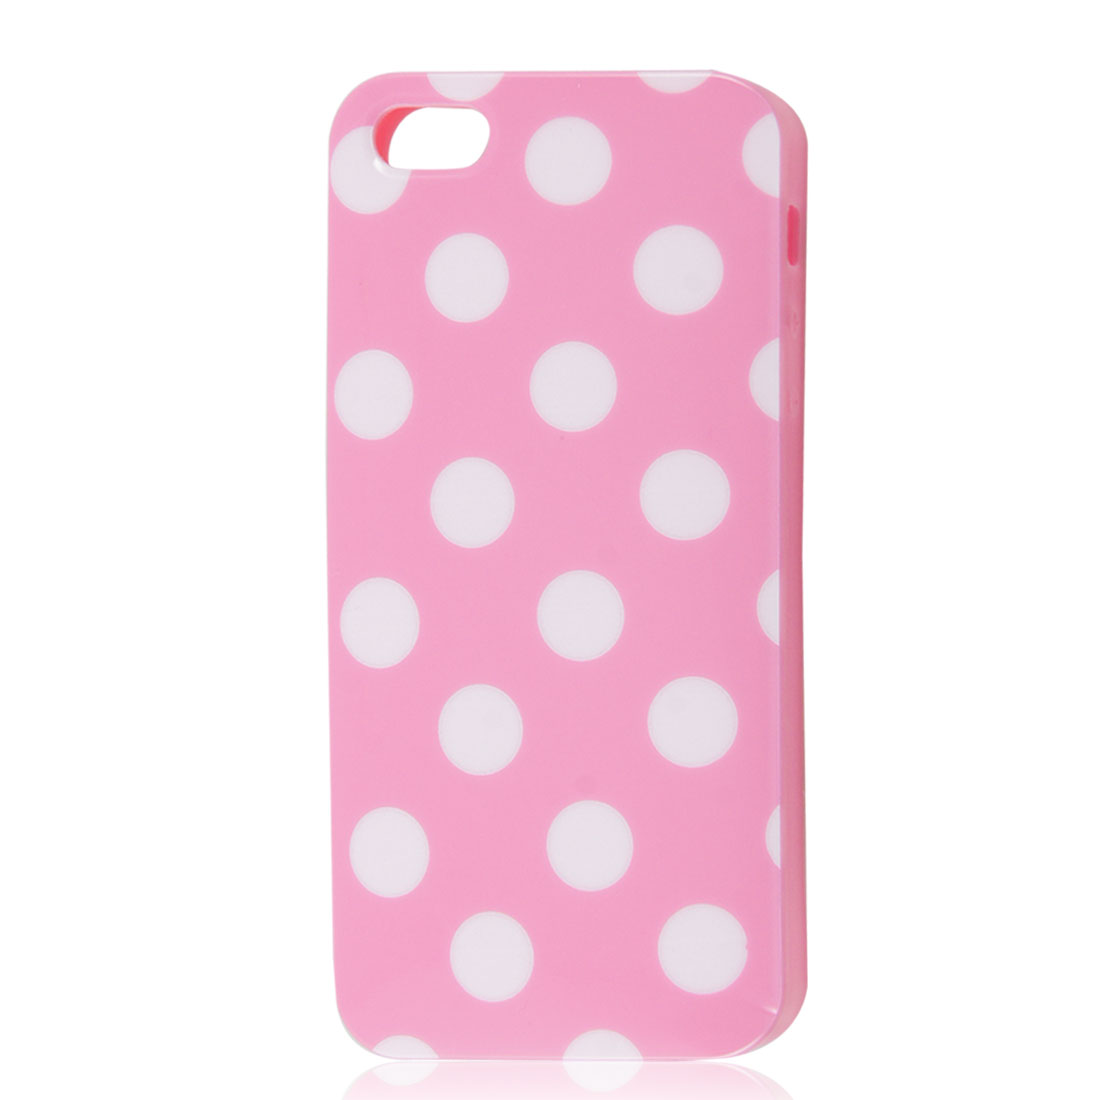 White Polka Dots Pink Soft Plastic Case Cover for Apple iPhone 5 5G